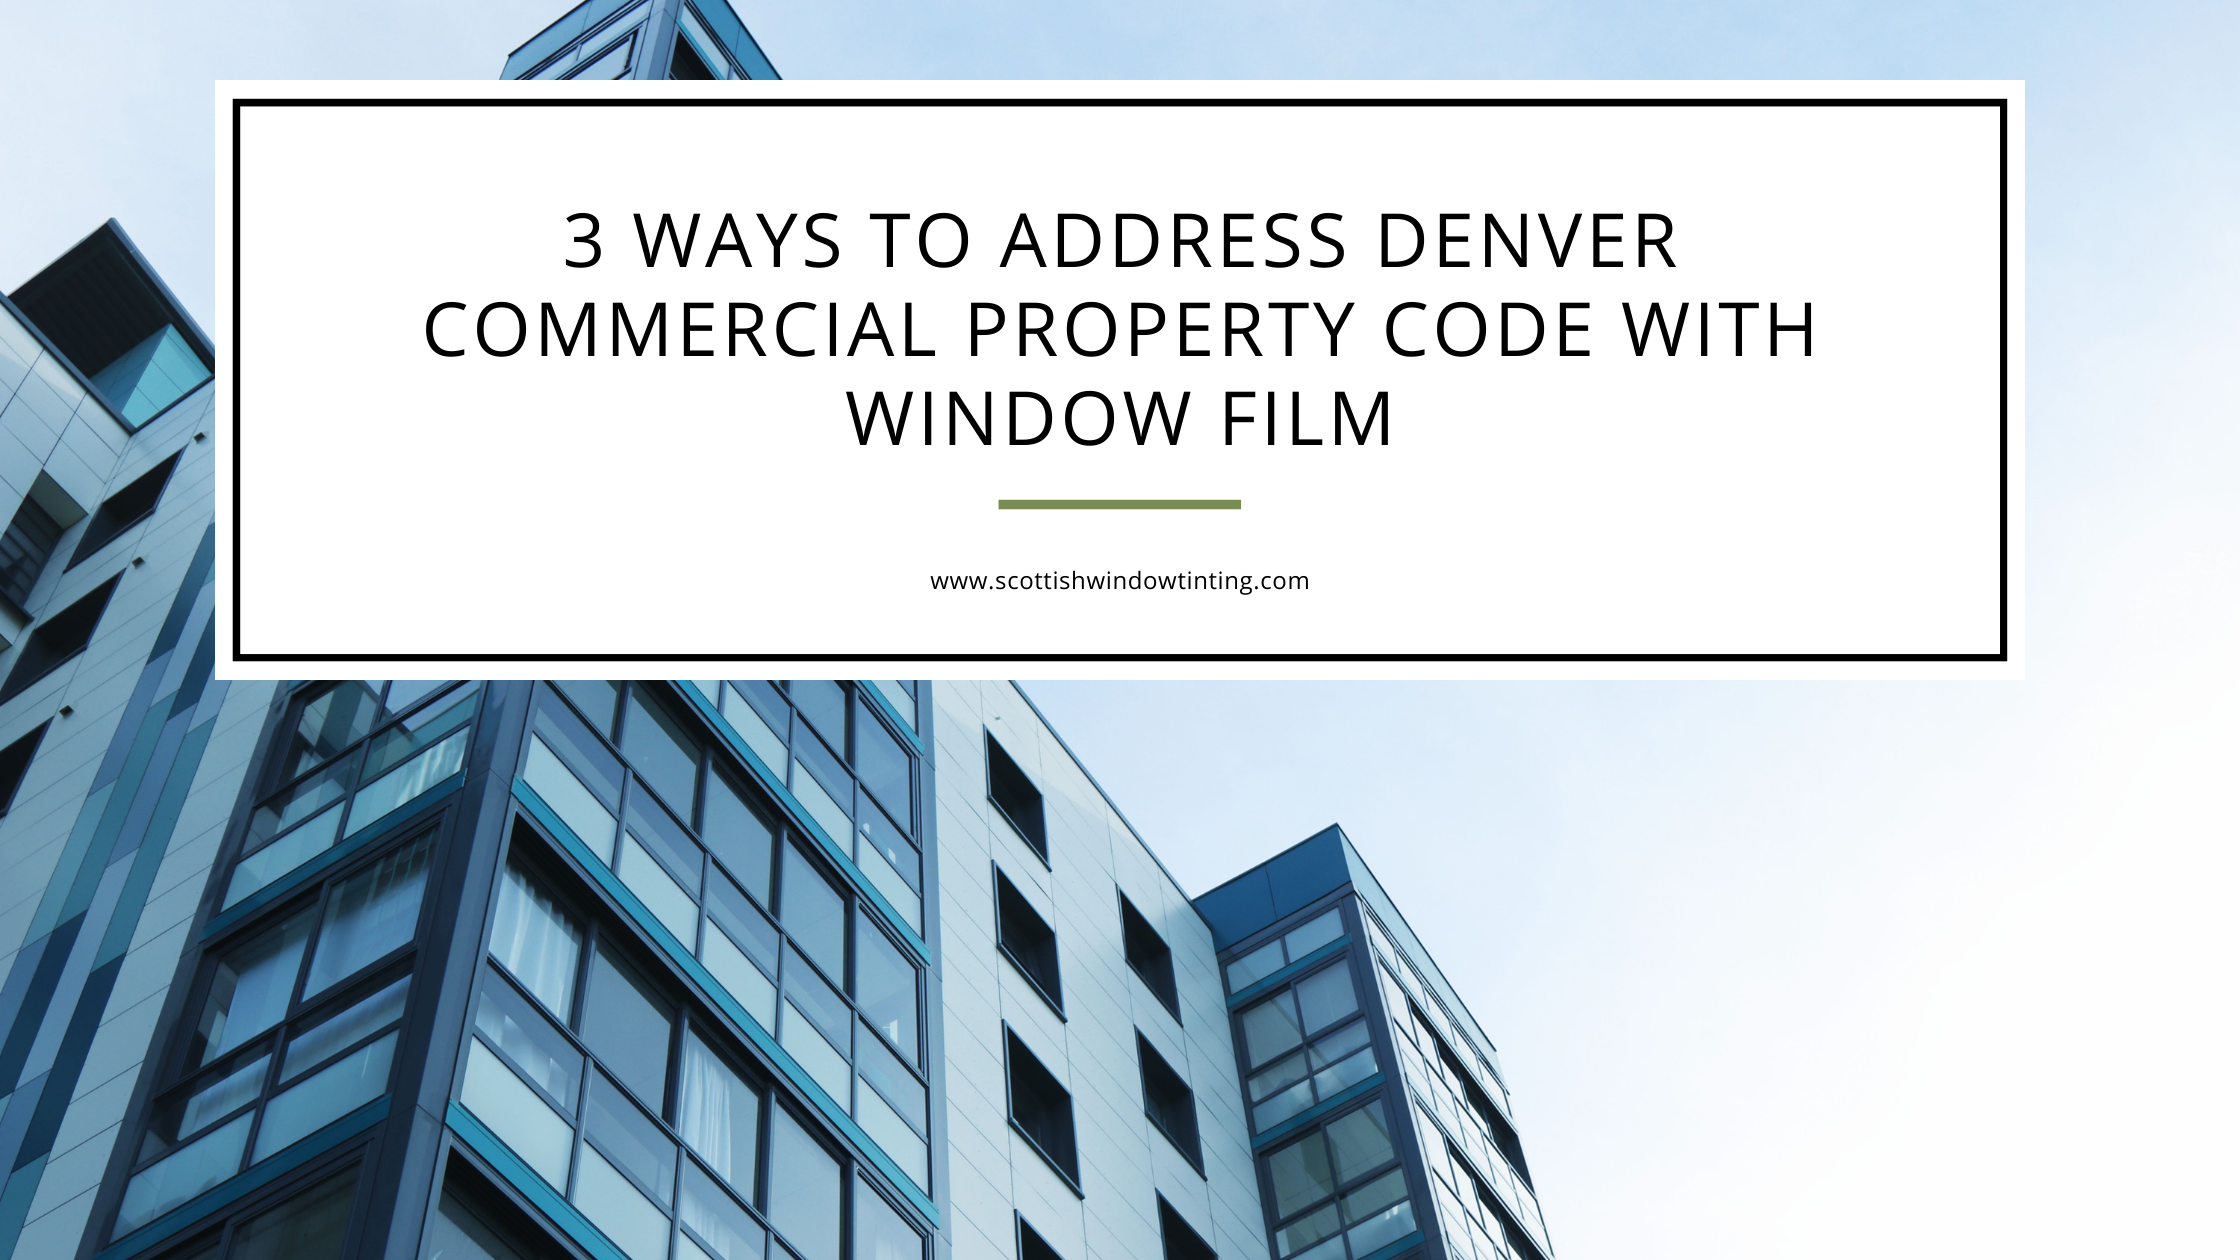 3 Ways to Address Denver Commercial Property Code with Window Film